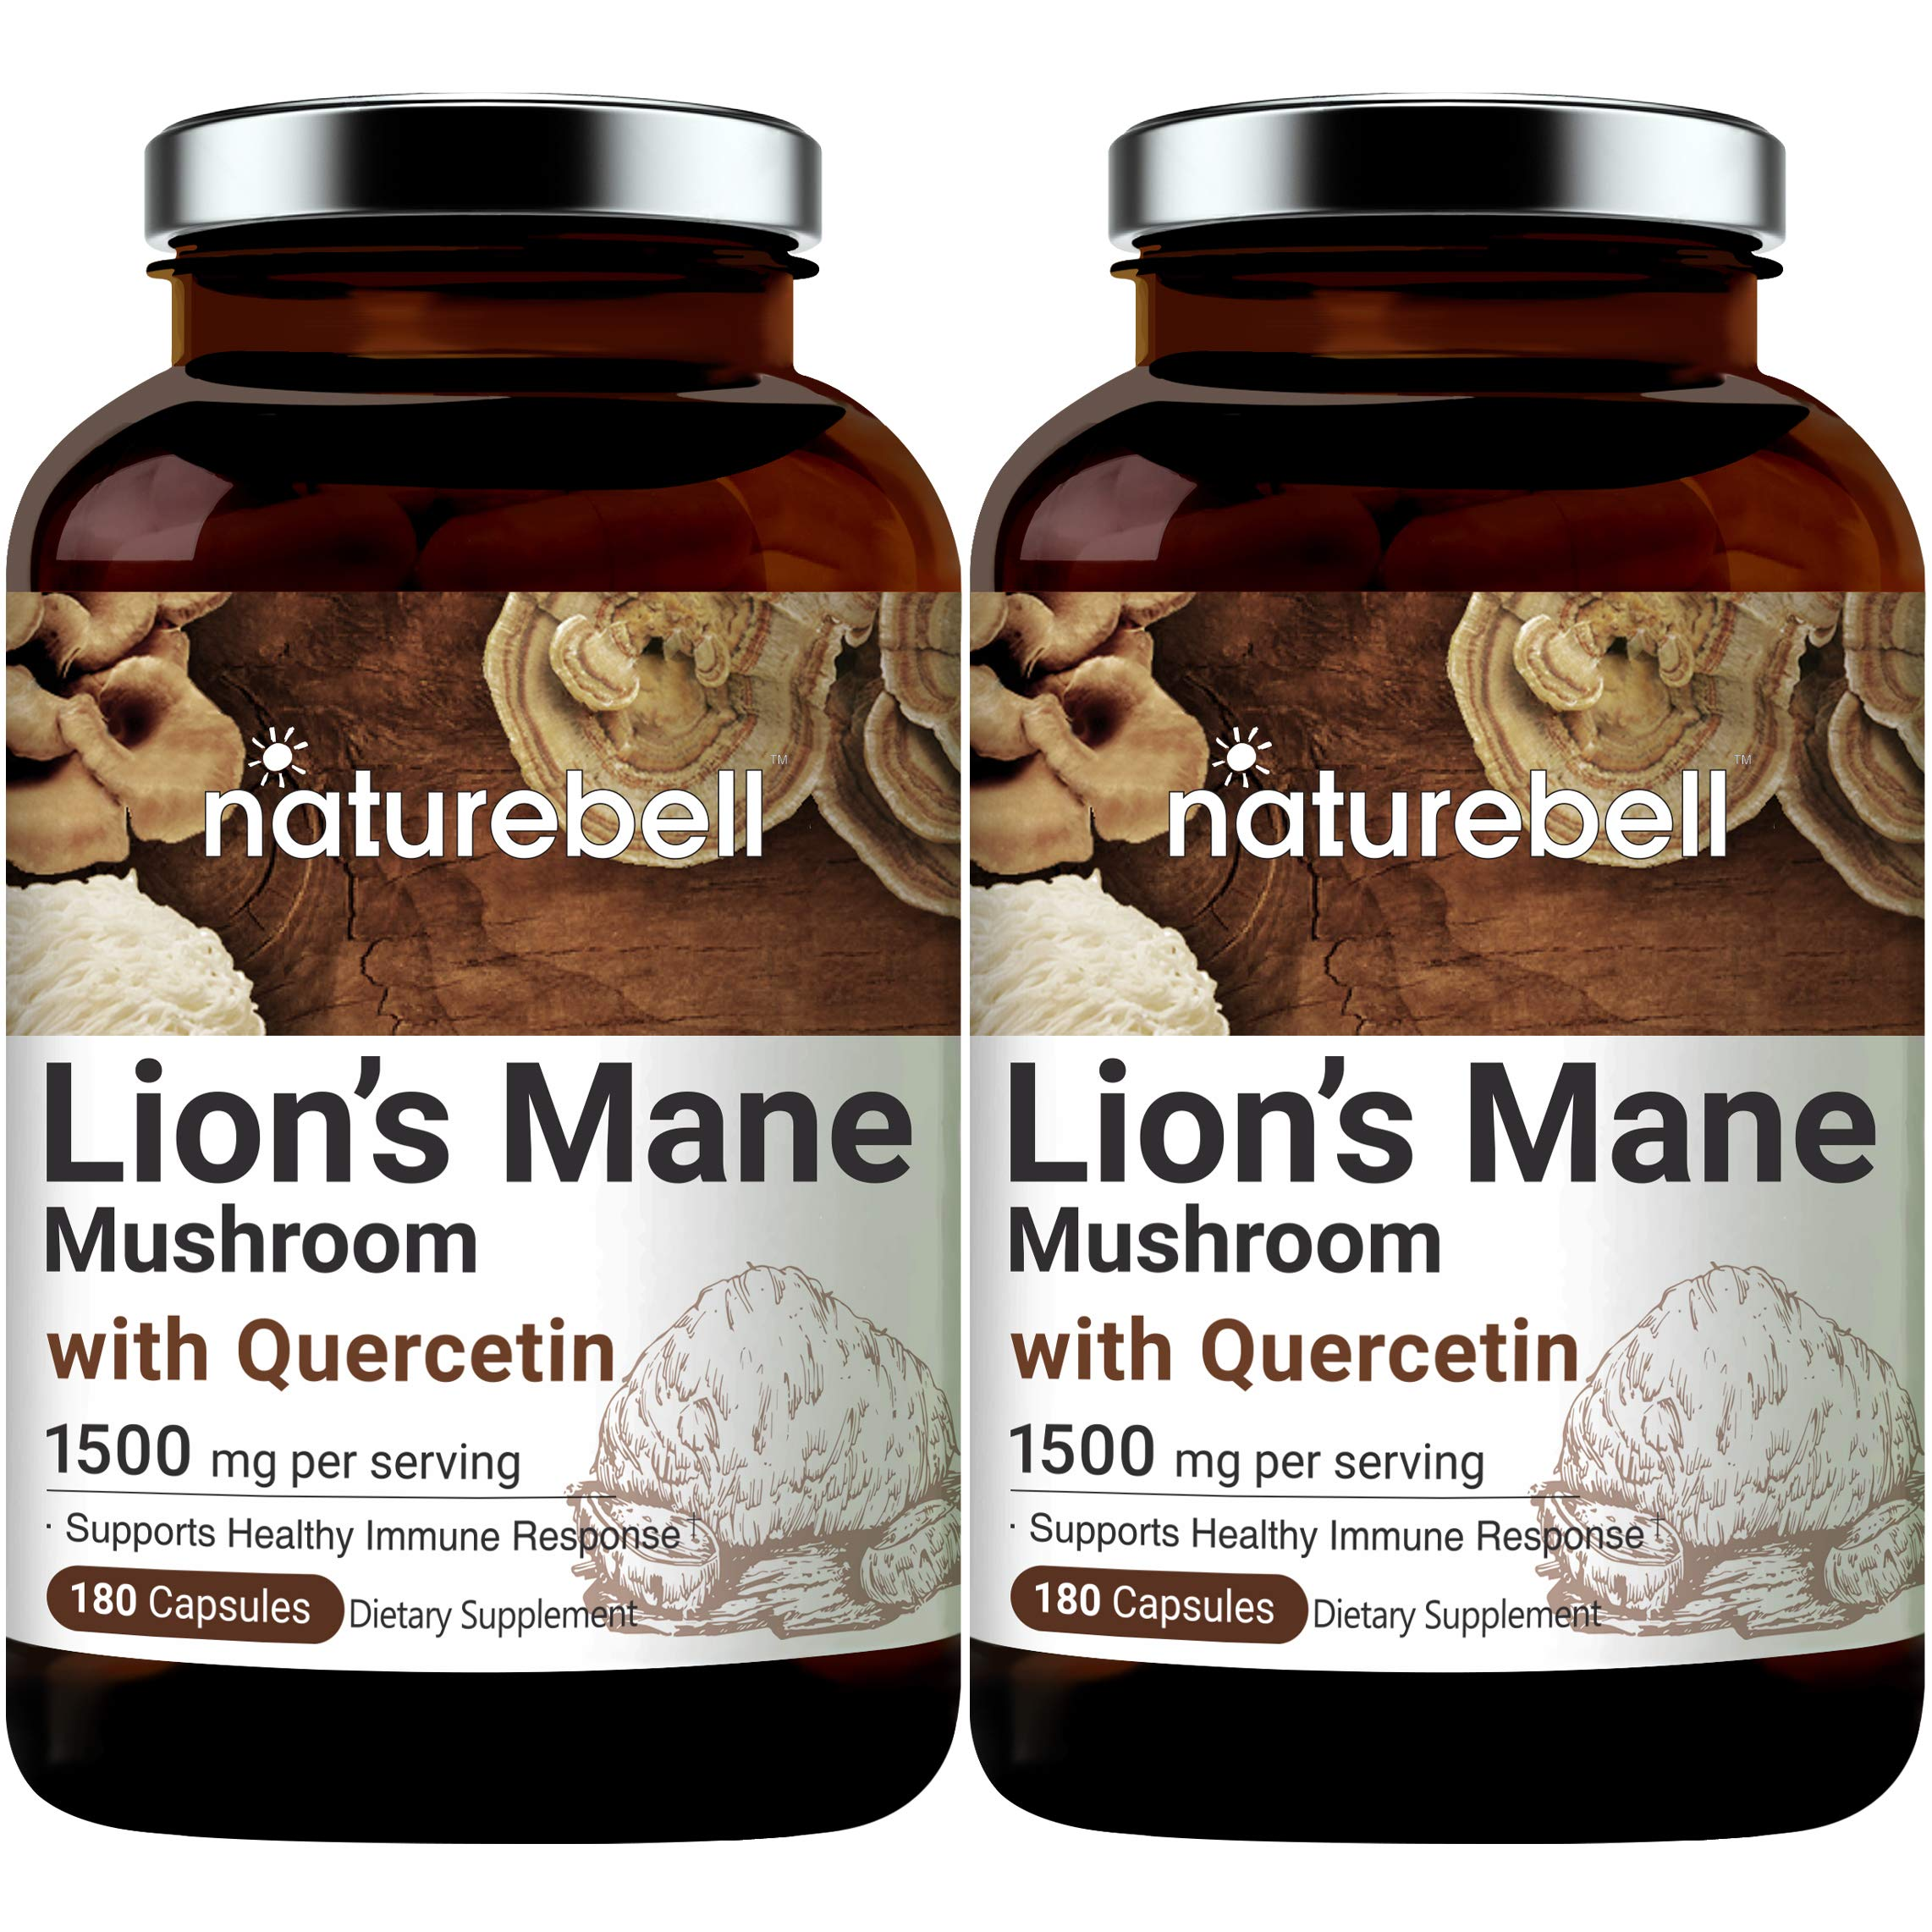 NatureBell Lions Mane (Made with Organic Lions Mane Mushroom), 1500mg Lion's Mane Plus 25mg Quercetin Per Serving, 180 Capsules, Strongly Supports Immune System and Brain Health, Non-GMO, Pack of 2